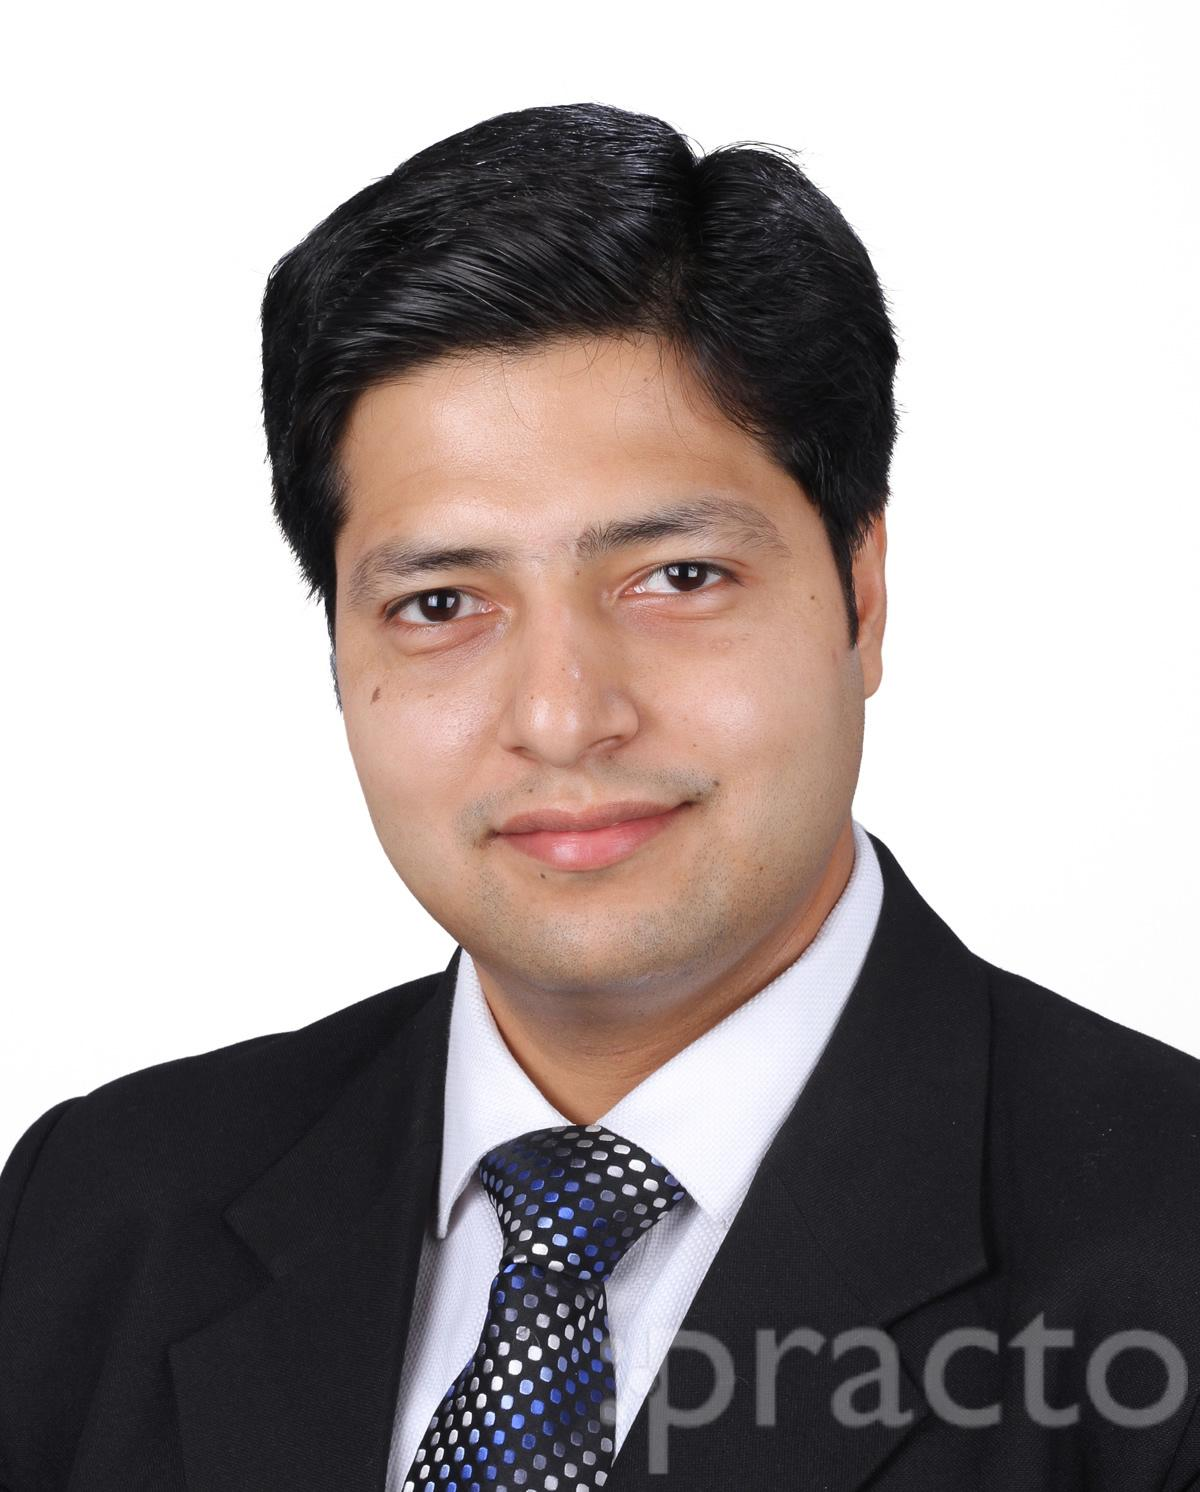 Dr. Sidharth Verma - Pain Management Specialist